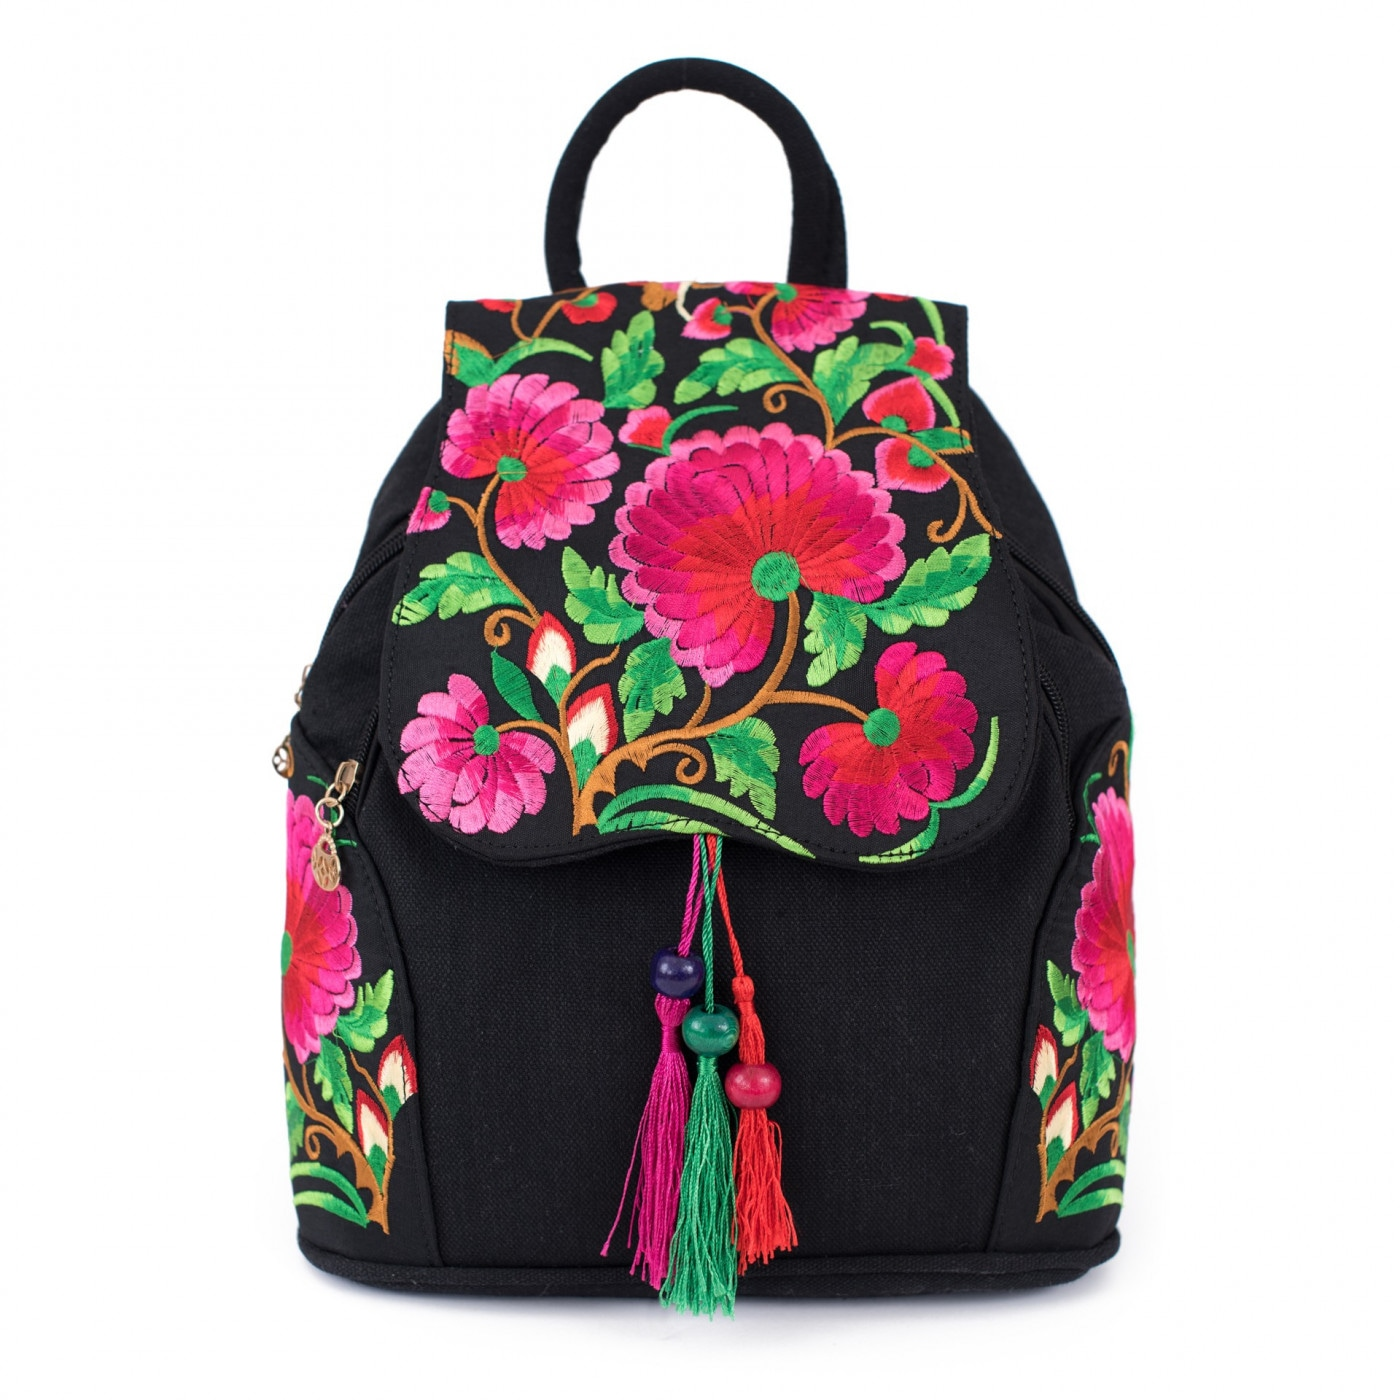 Art Of Polo Woman's Backpack tr19396